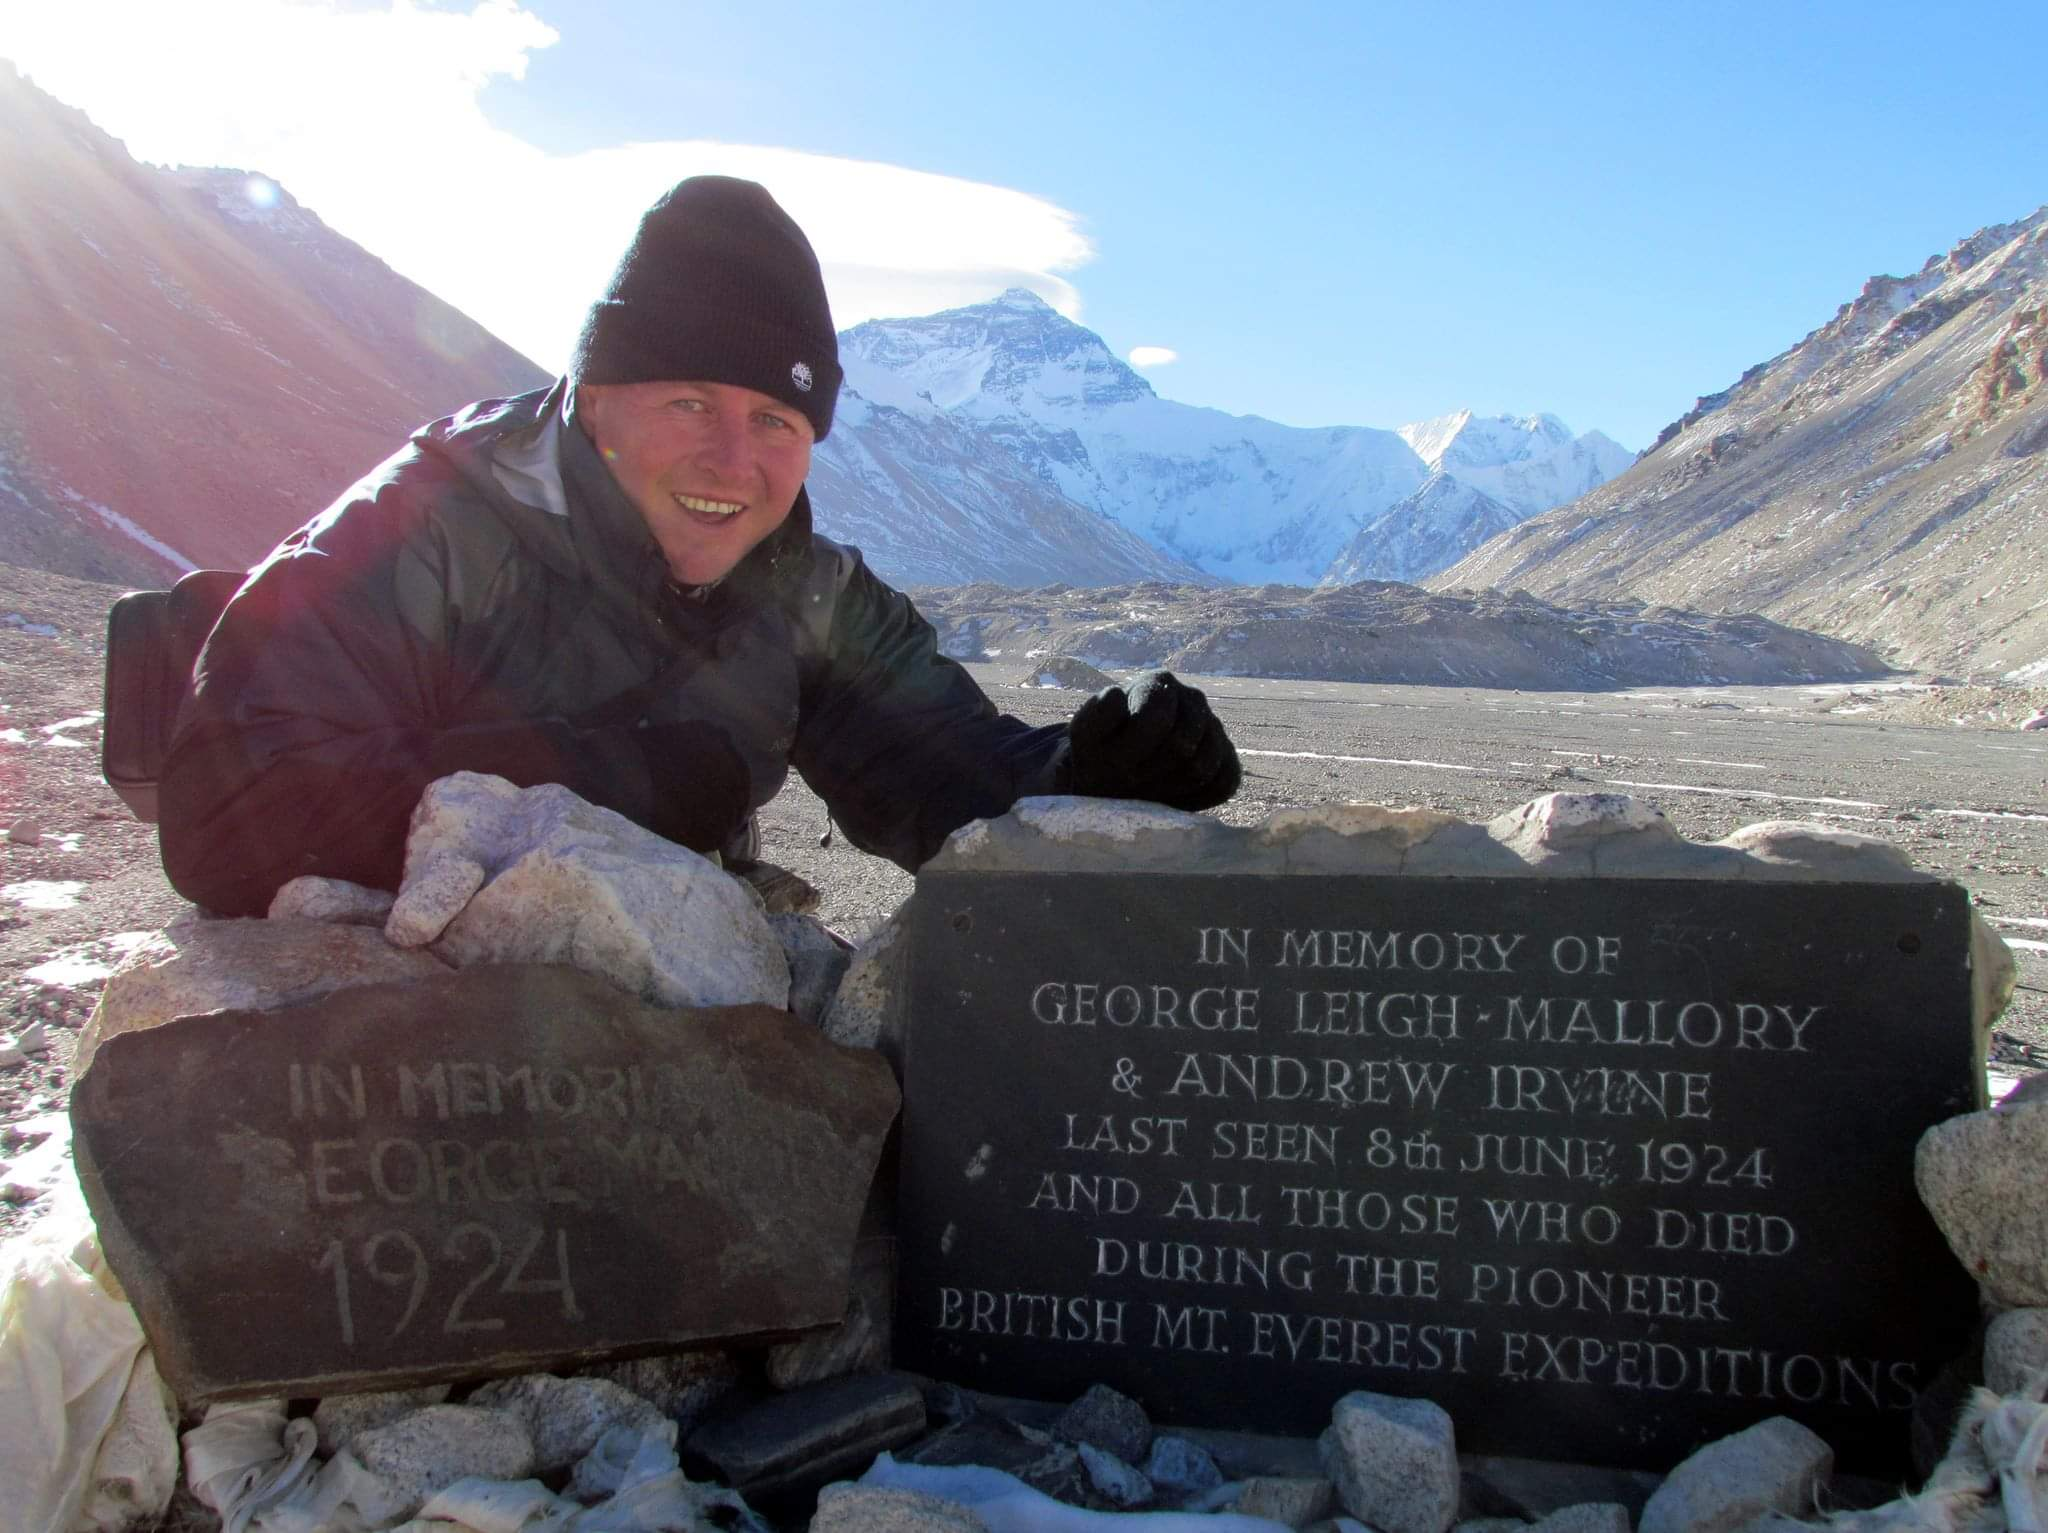 Mount Everest Base Camp, Tibet. Paying tribute to climbers Irvine and Mallory